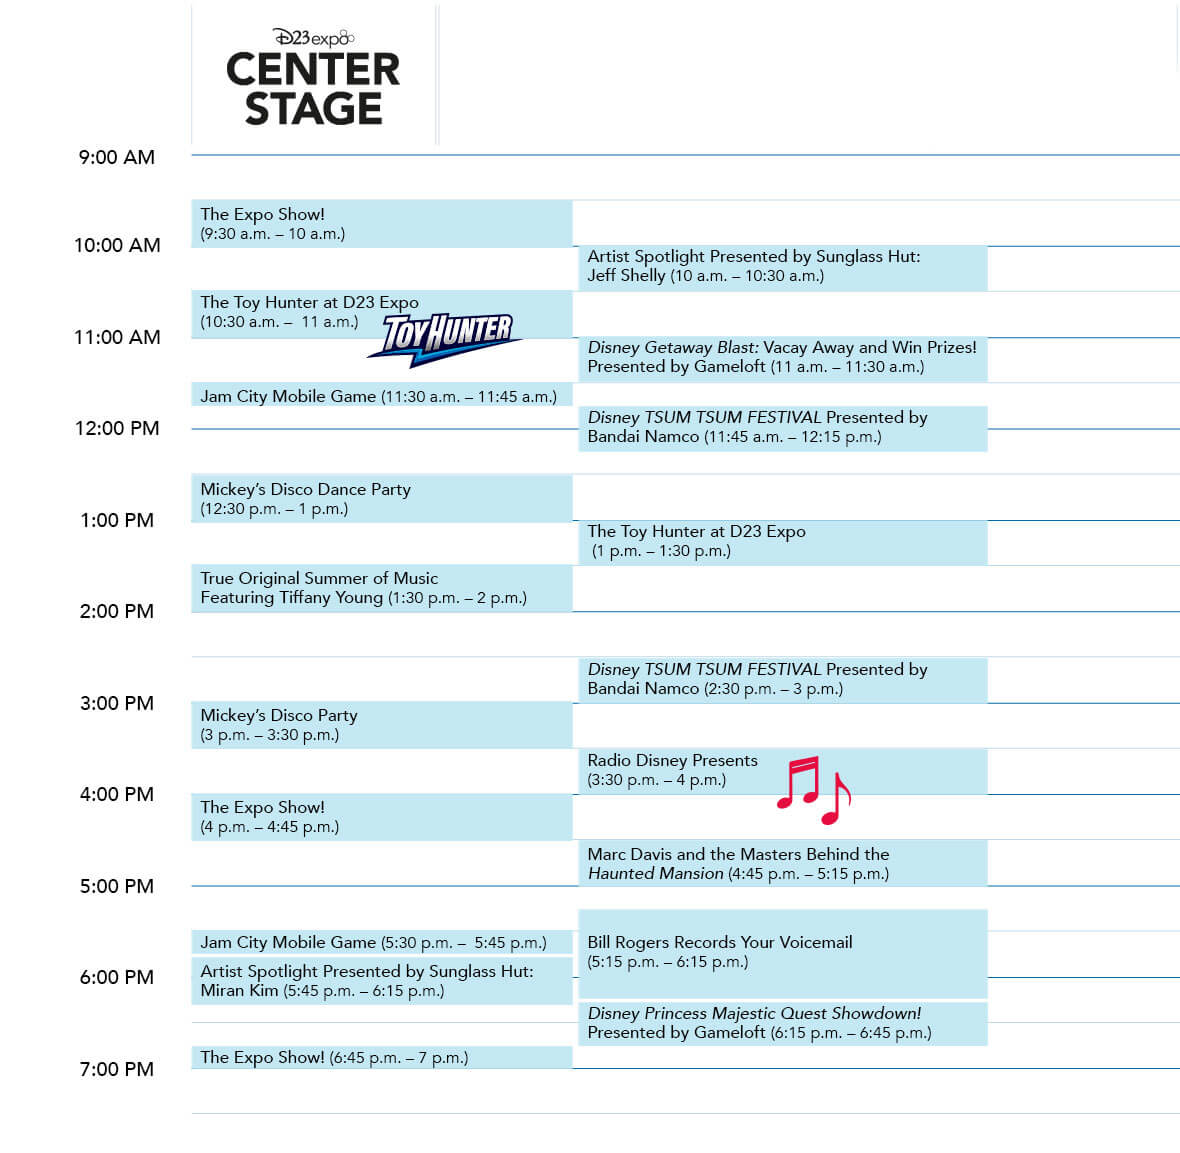 D23 Expo 2019 Center Stage Sunday schedule